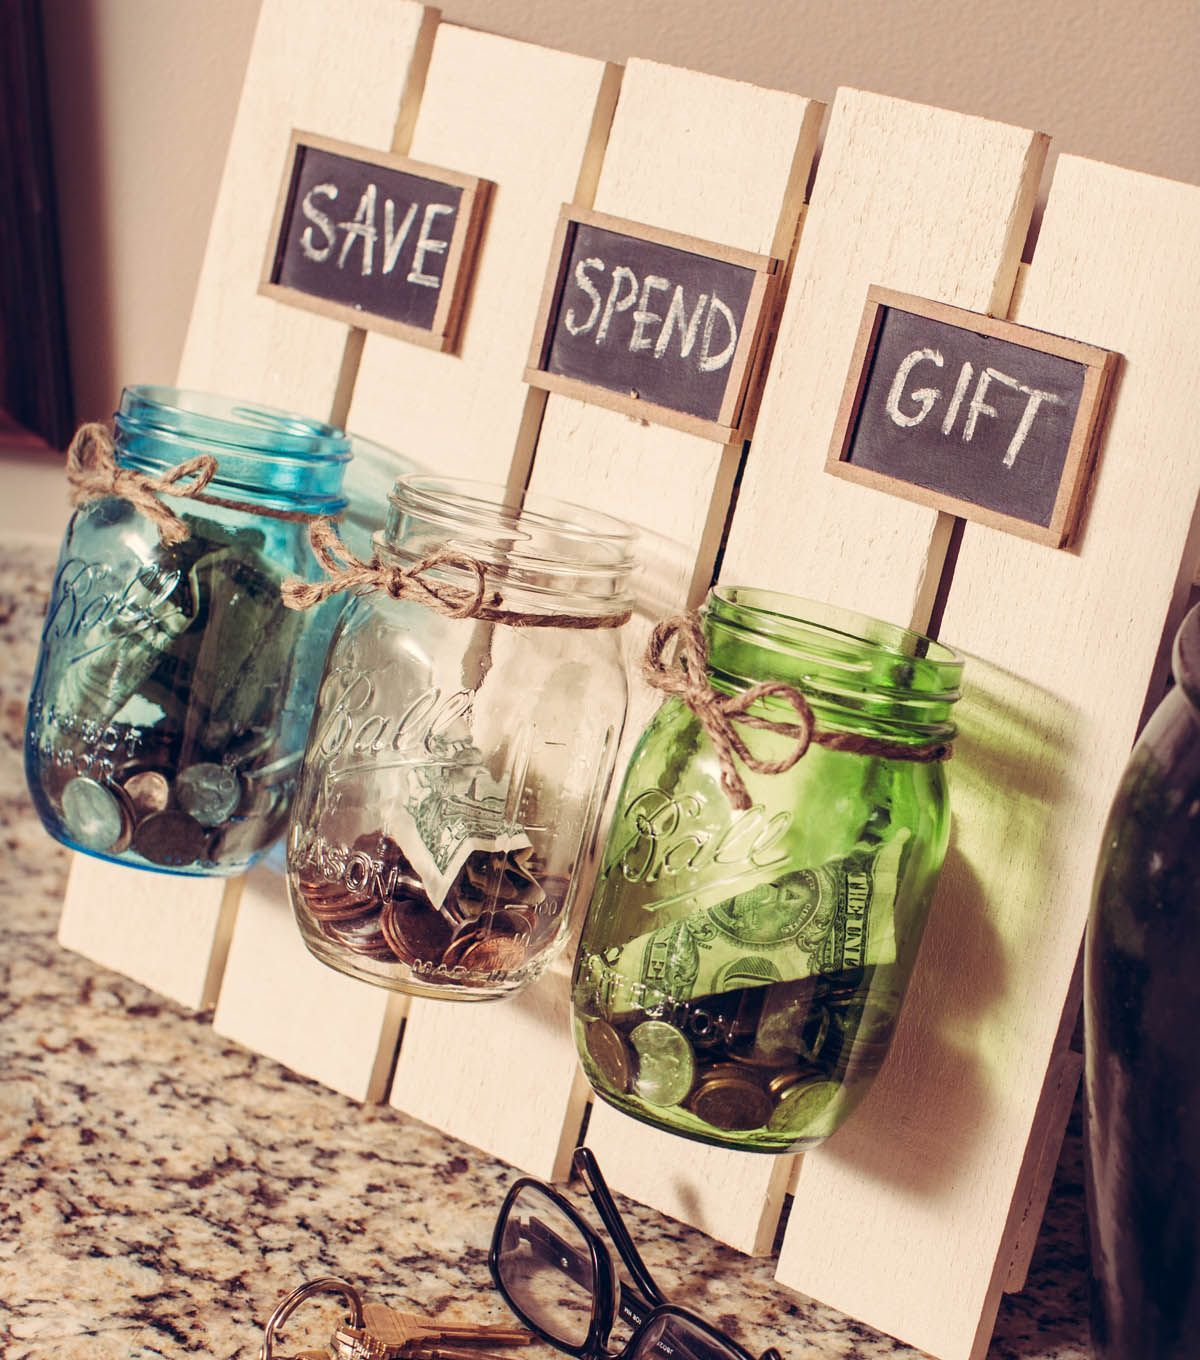 Mason jars are one of my favorite things.  I'm usually a pretty frugal gal, but put me in an antique store with vintage jars, and I go a bit gaga.  There are just so many things you can do with them!  These are some of my favorite projects that I've found around the internet, rangingKeep Reading More on good ideas and DIY